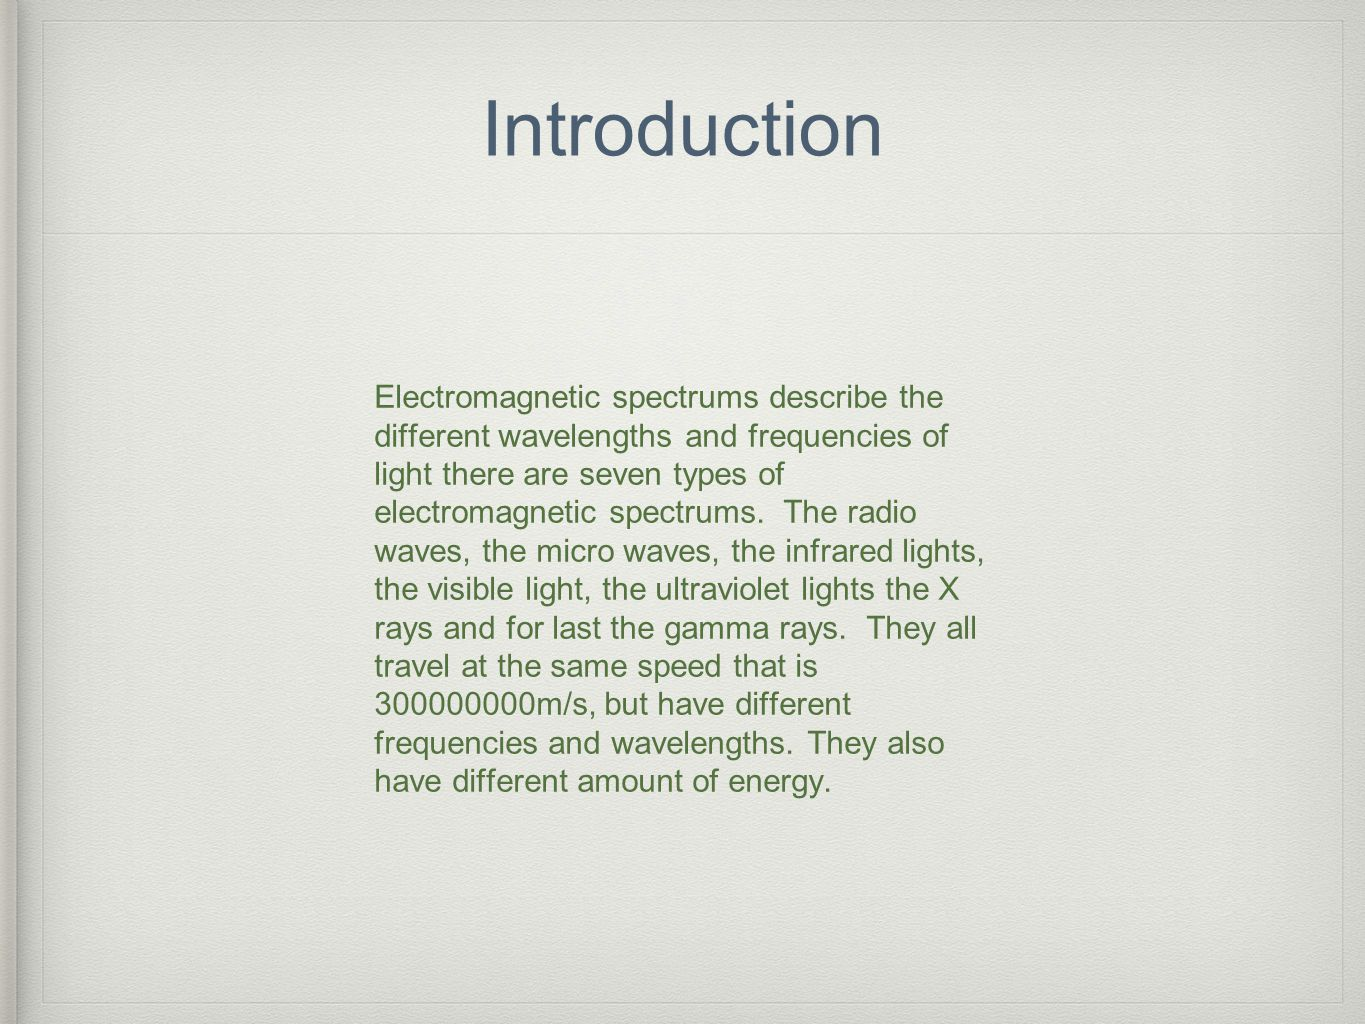 Introduction Electromagnetic spectrums describe the different wavelengths and frequencies of light there are seven types of electromagnetic spectrums.